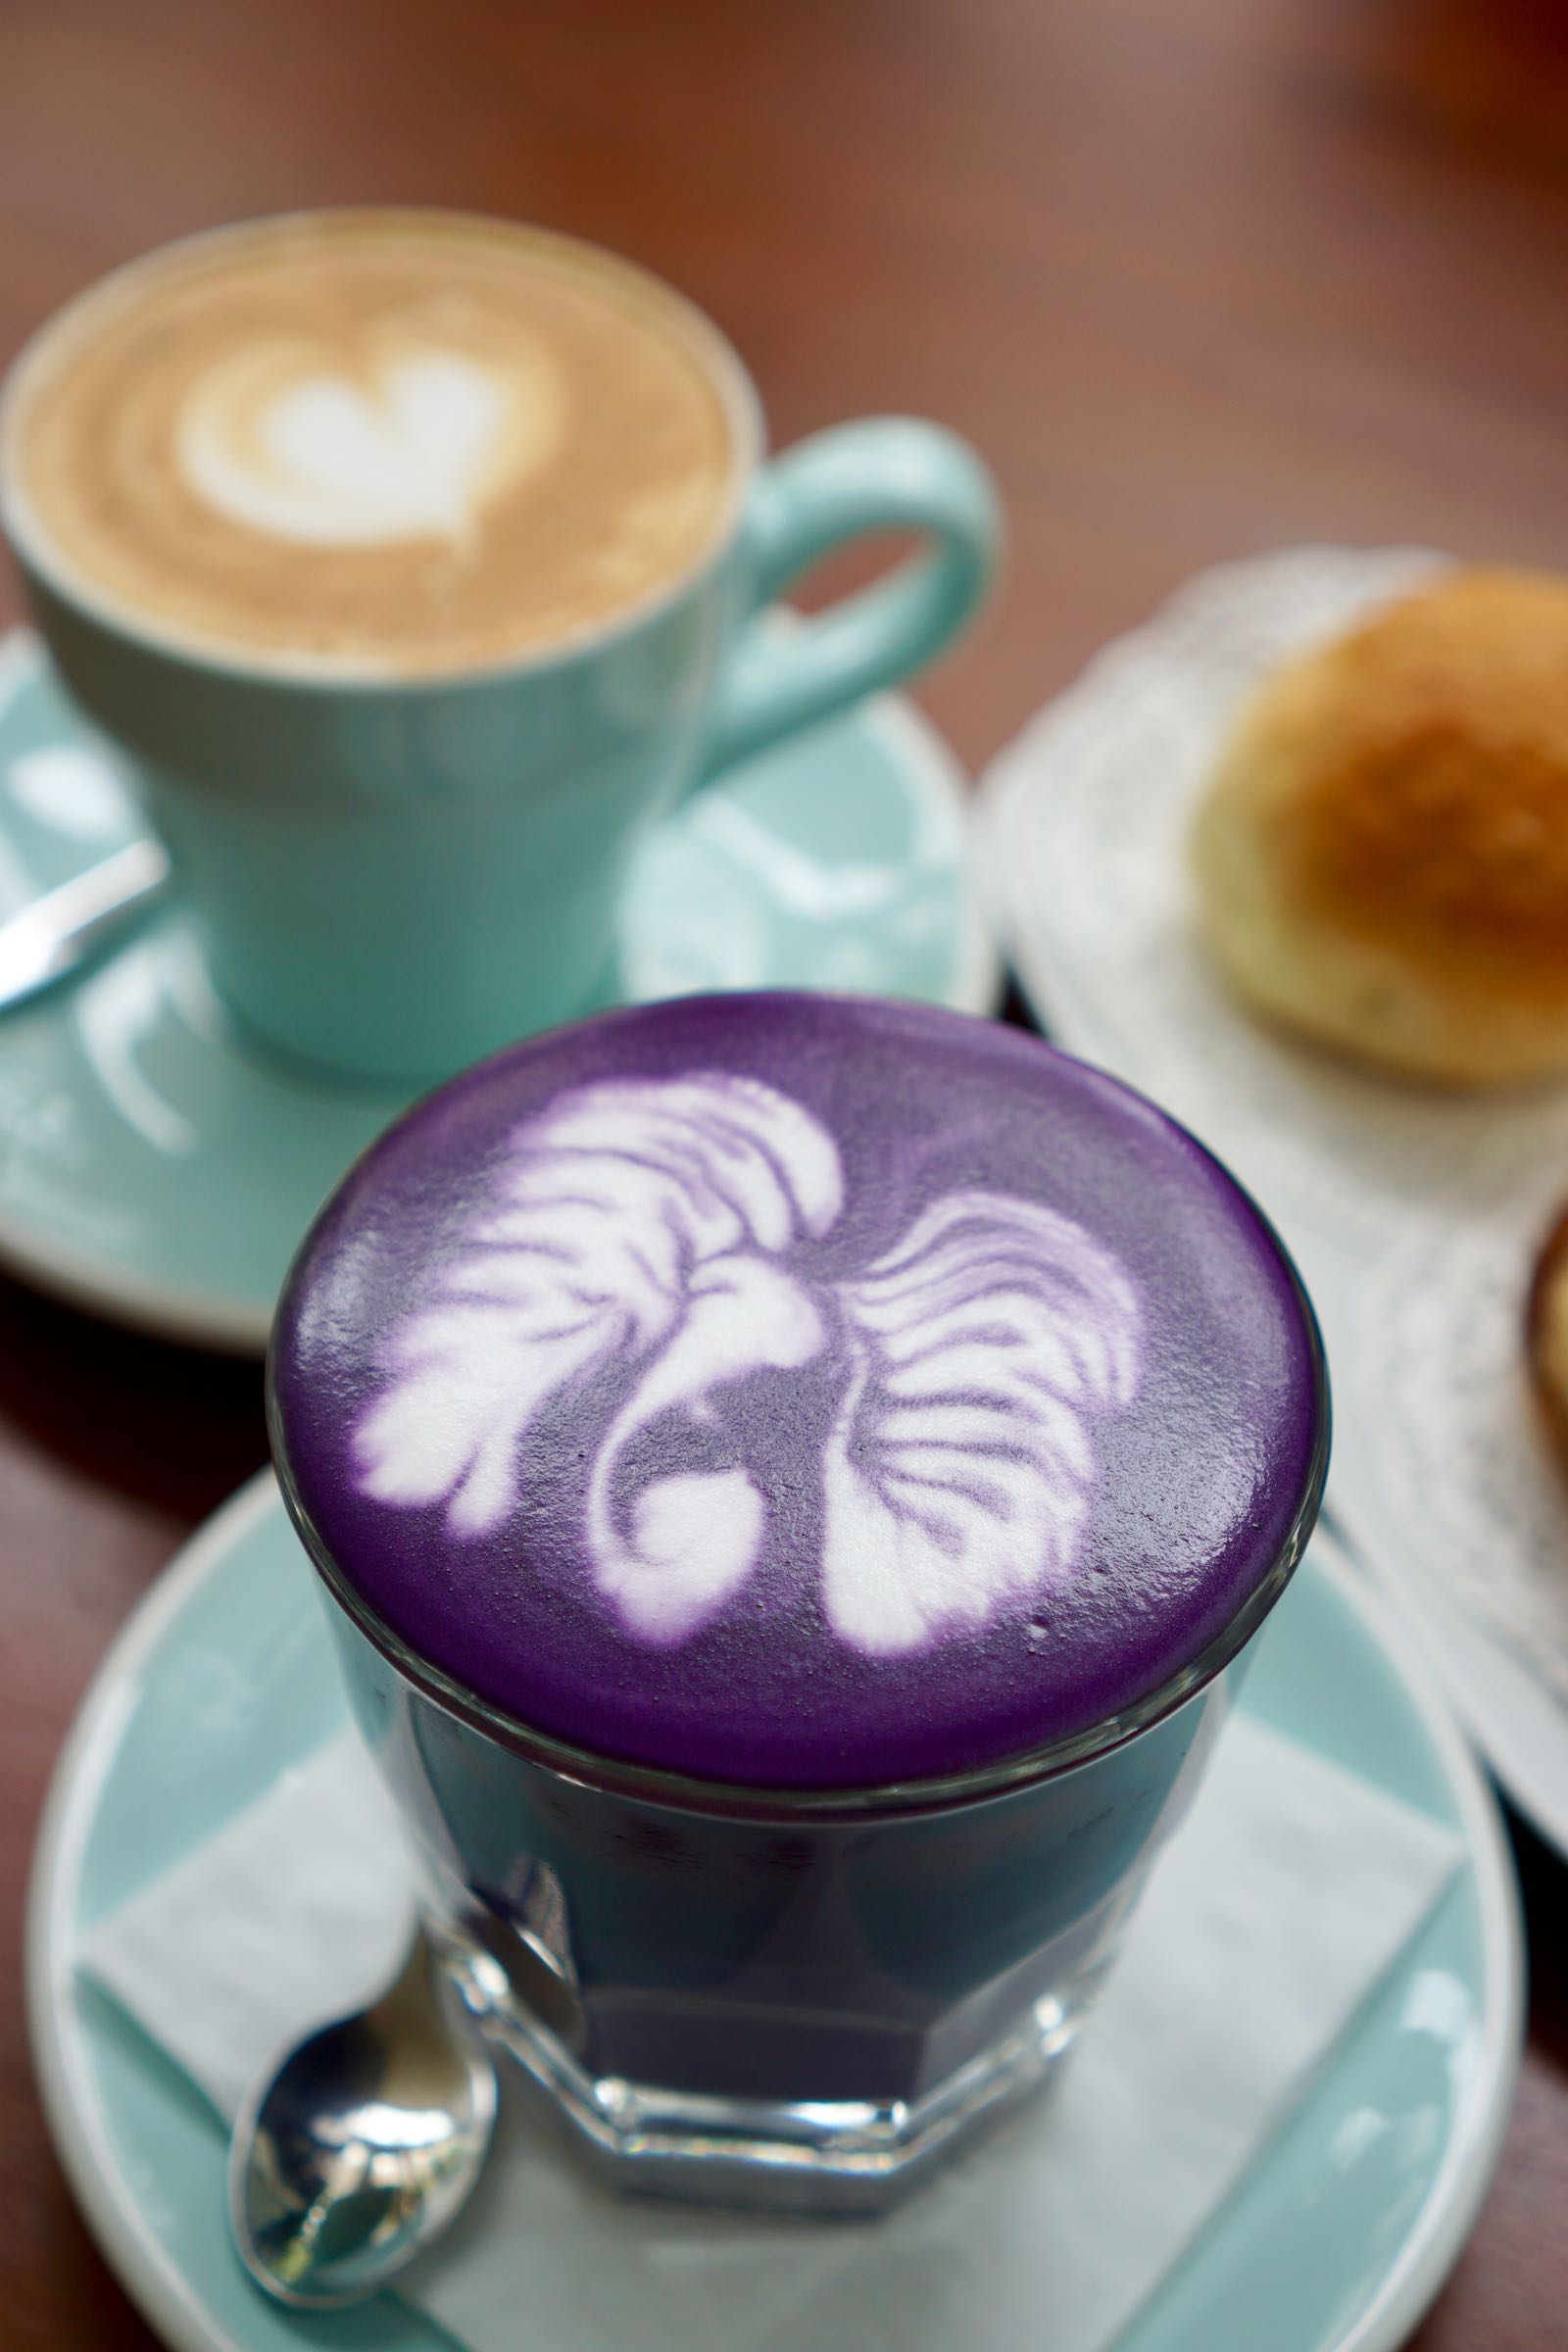 Hot Taro Latte Sydwic